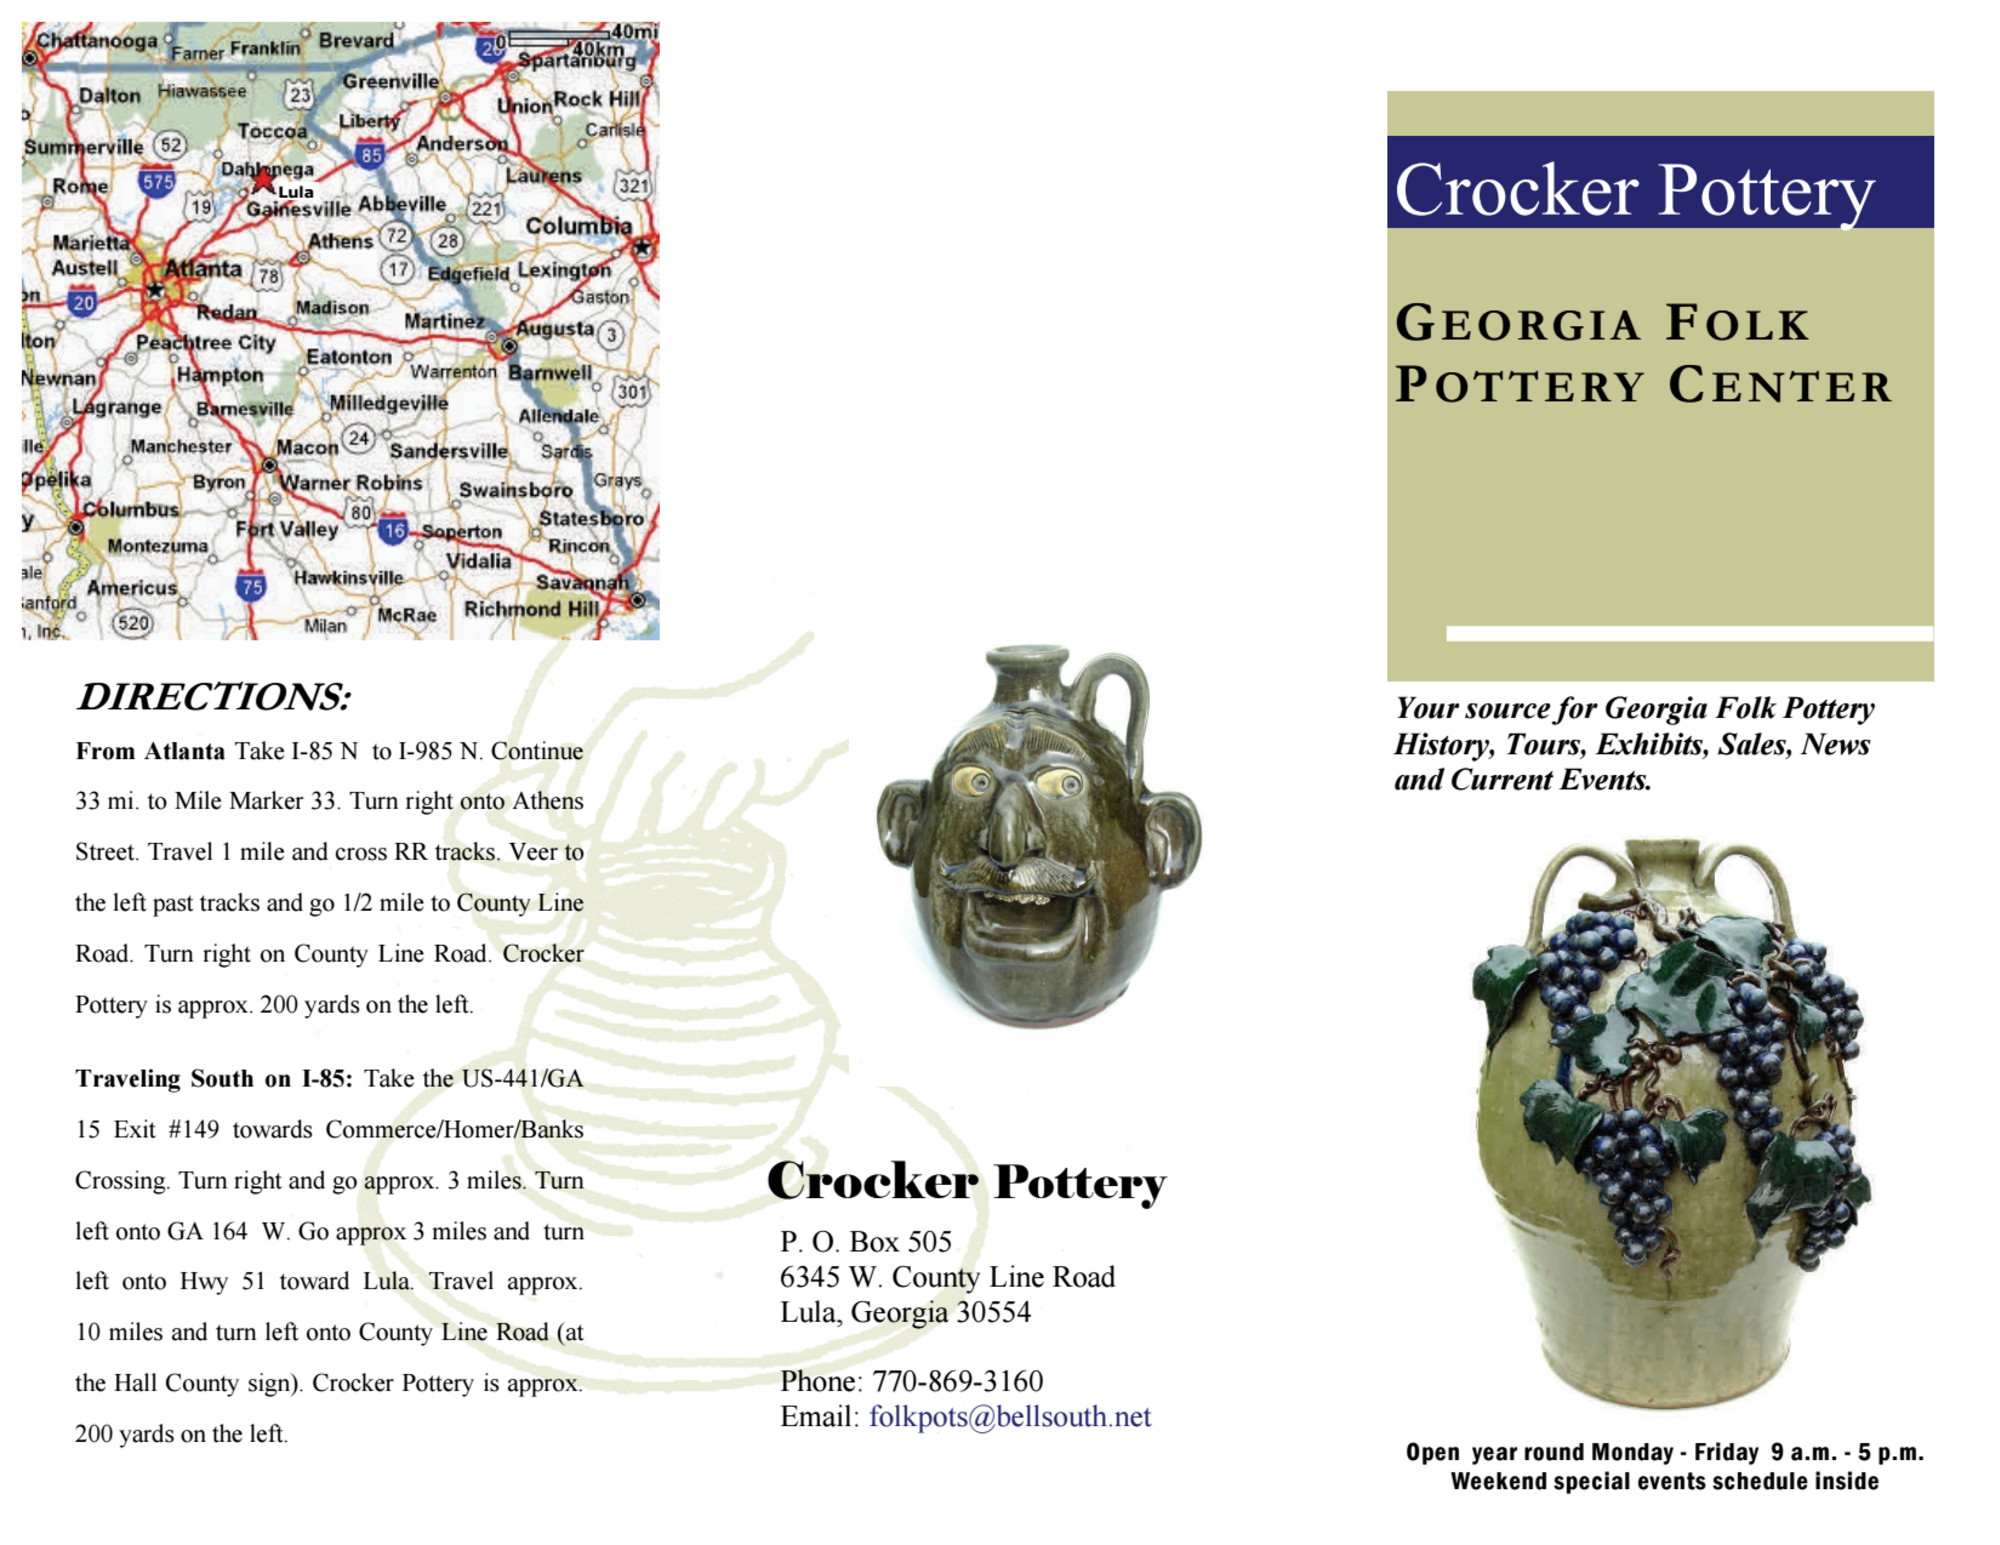 Crocker Pottery Georgia Folk Pottery Center